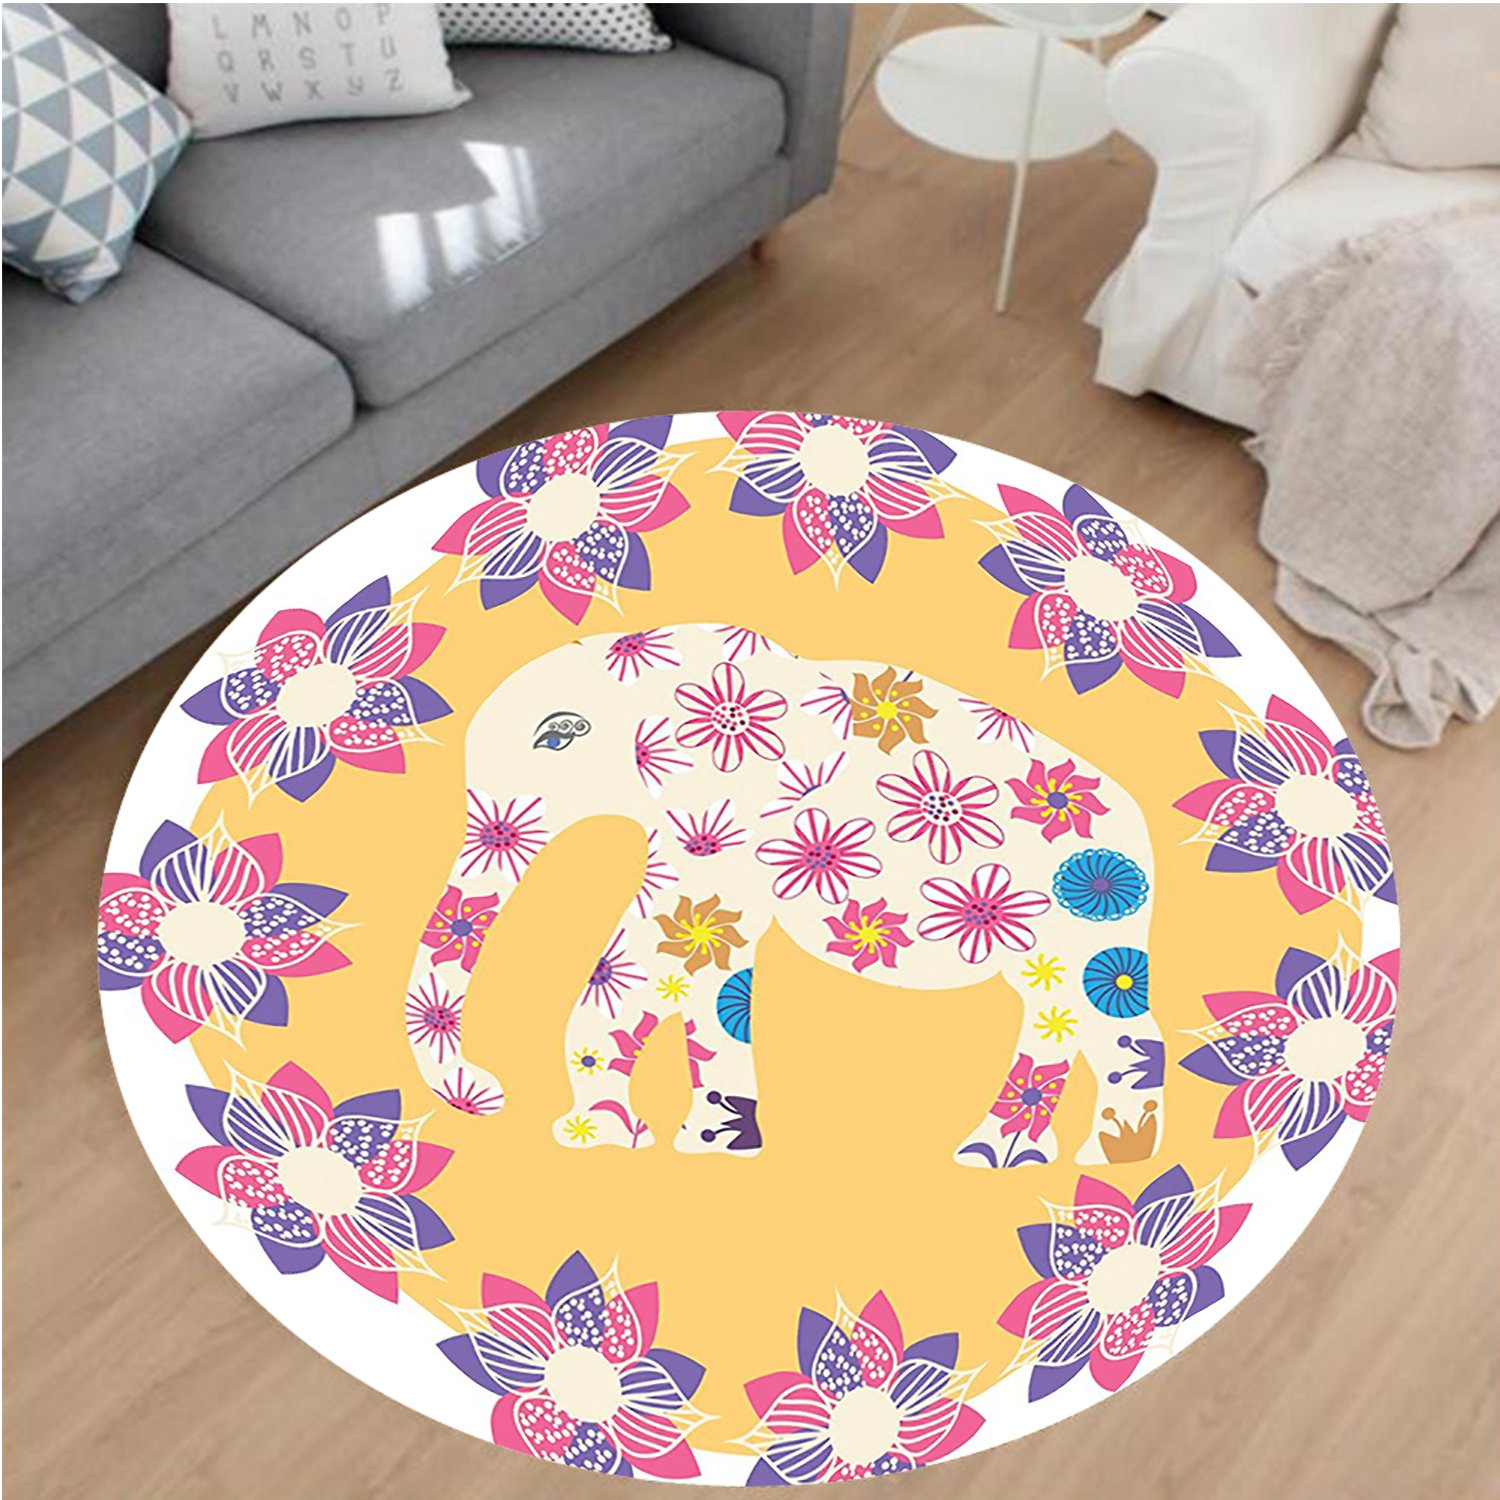 Nalahome Modern Flannel Microfiber Non-Slip Machine Washable Round Area Rug-Cartoon Thai Baby Elephant Kids Decor Colorful Natural Wildlife Animal Prints area rugs Home Decor-Round 79''